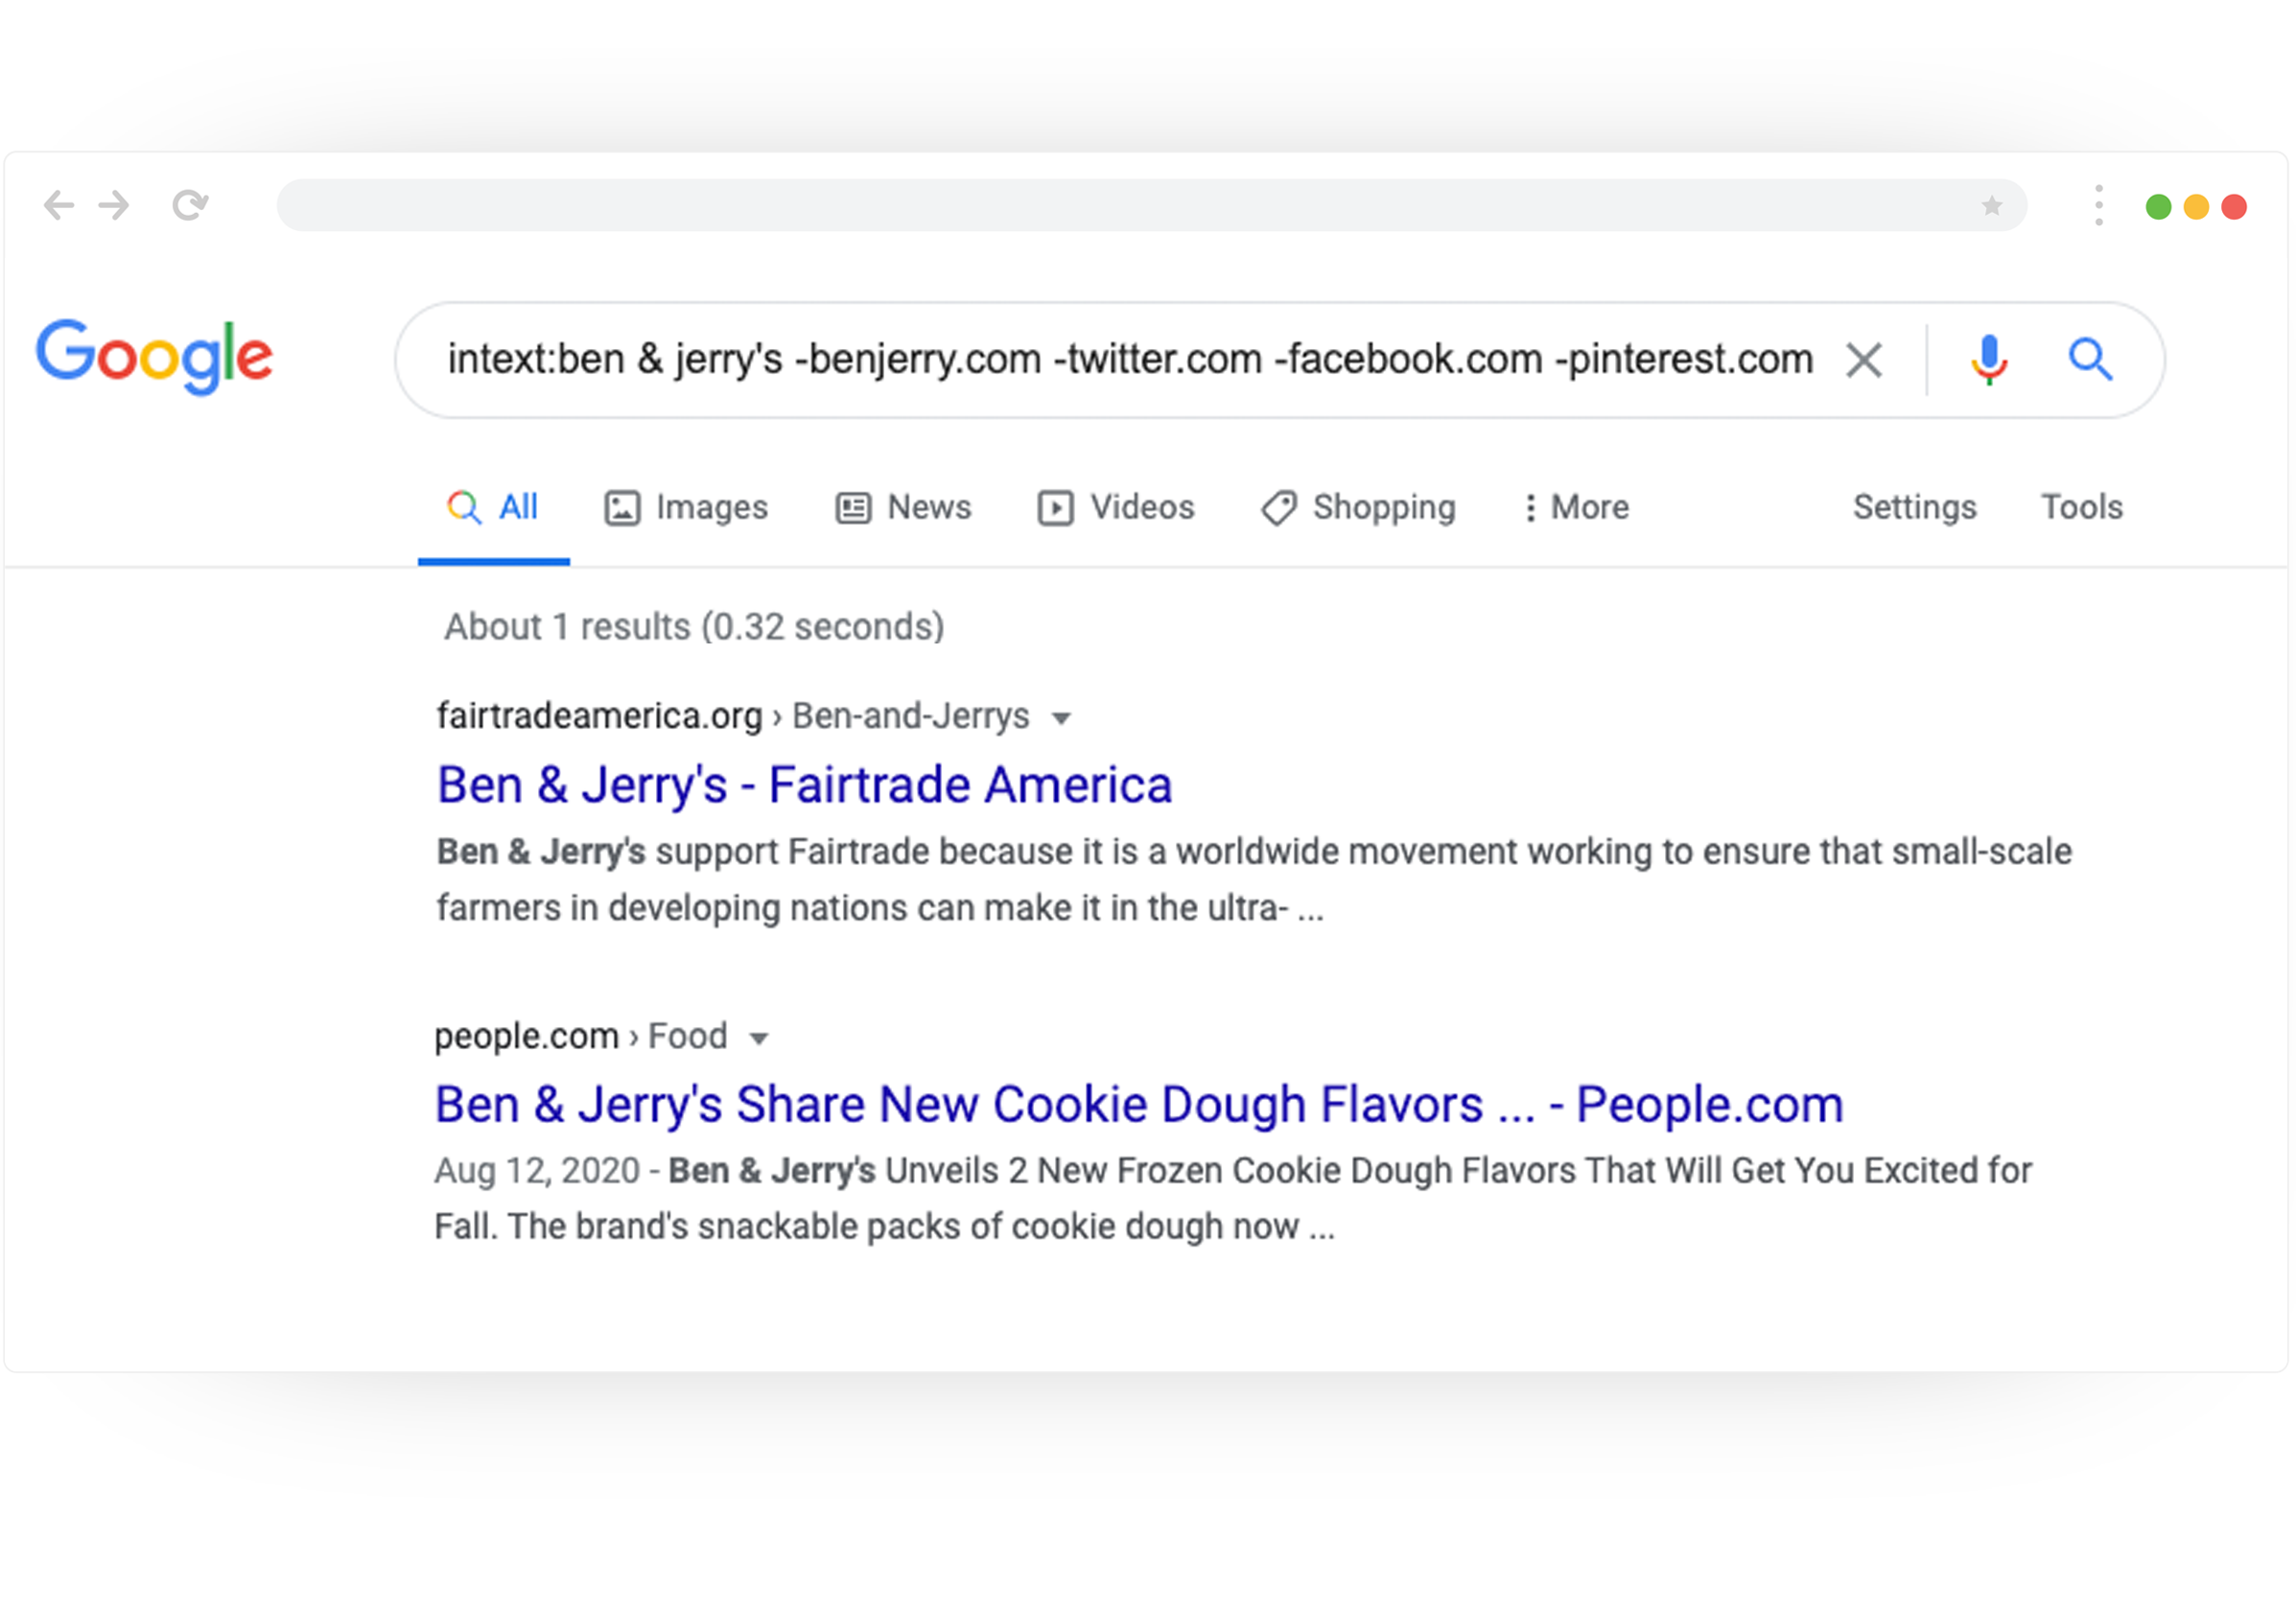 intext:ben & jerry's -benjerry.com -twitter.com -facebook.com -pinterest.com -youtube.com backlinks